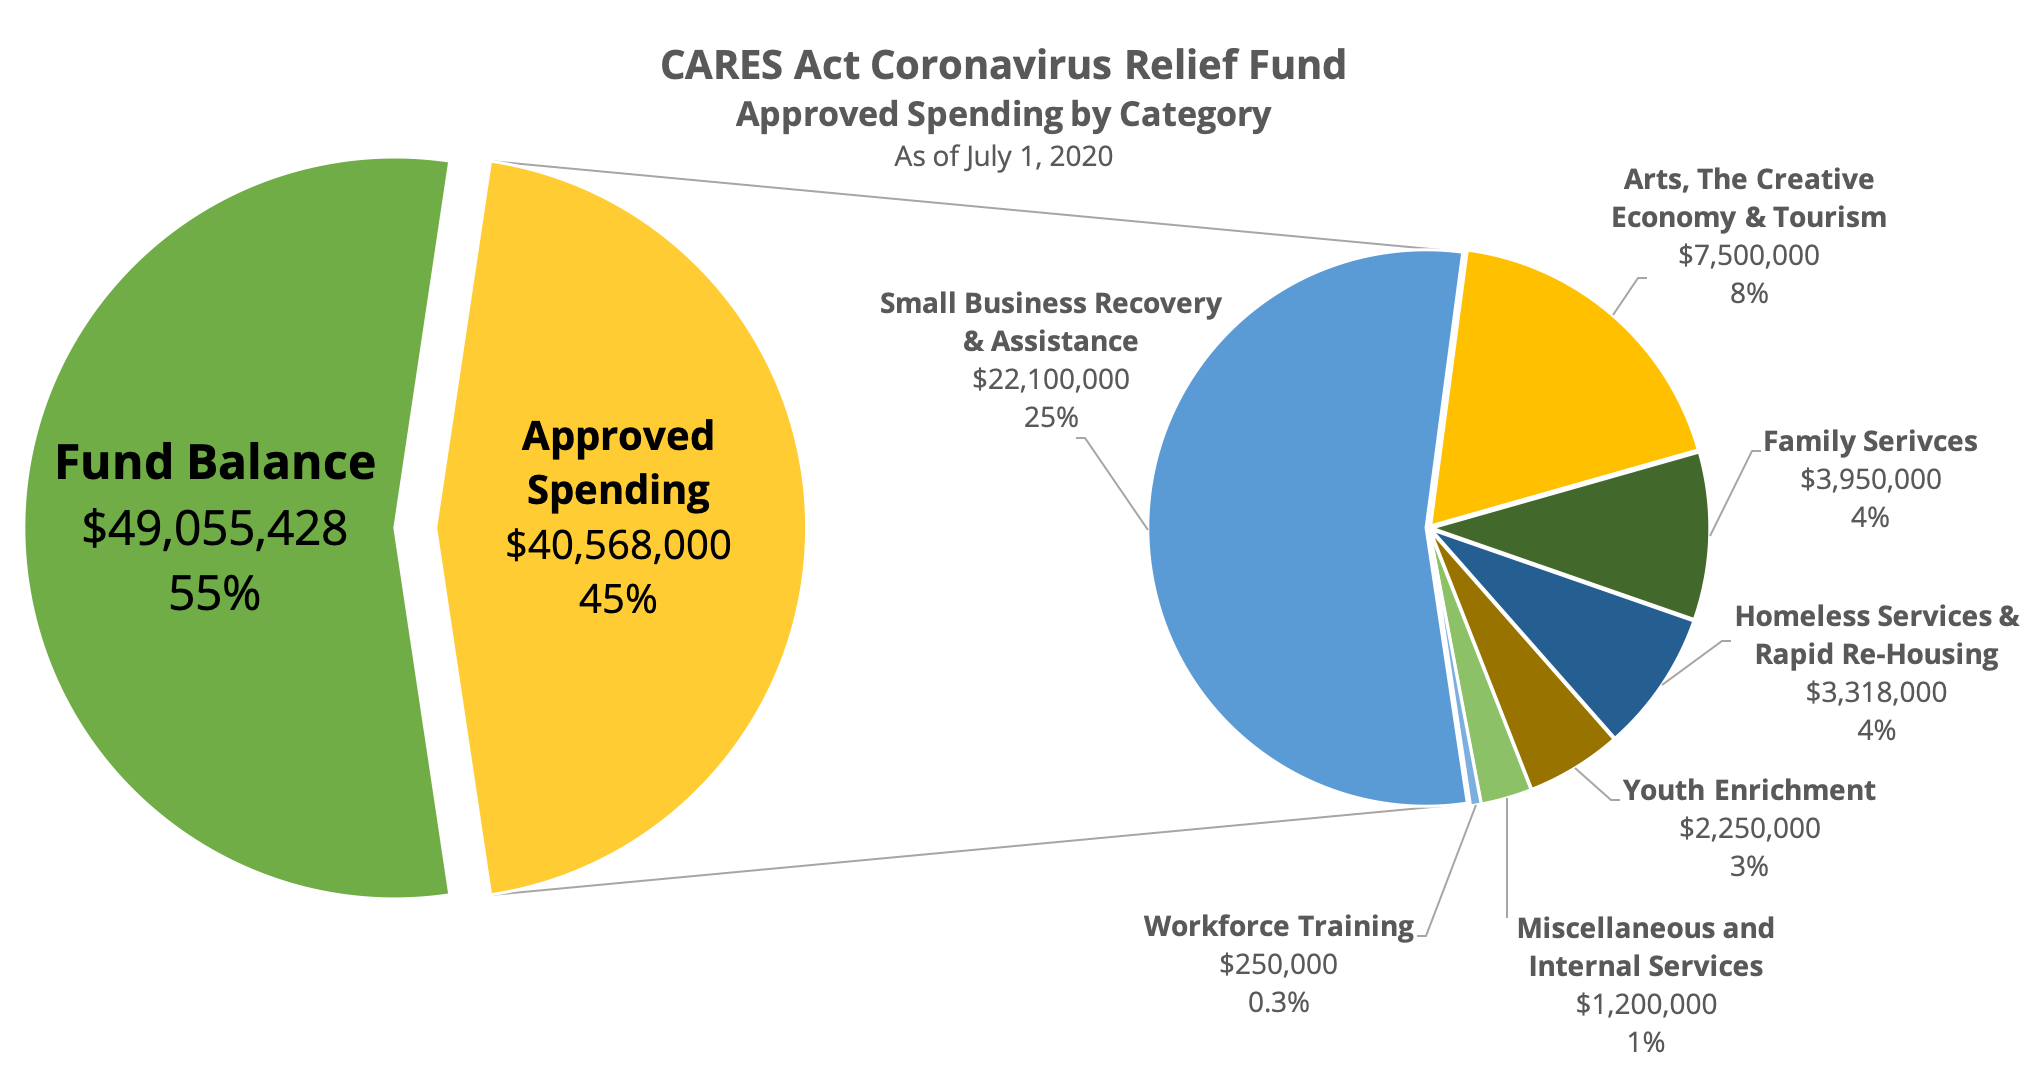 CRF Spending as of July 1, 2020